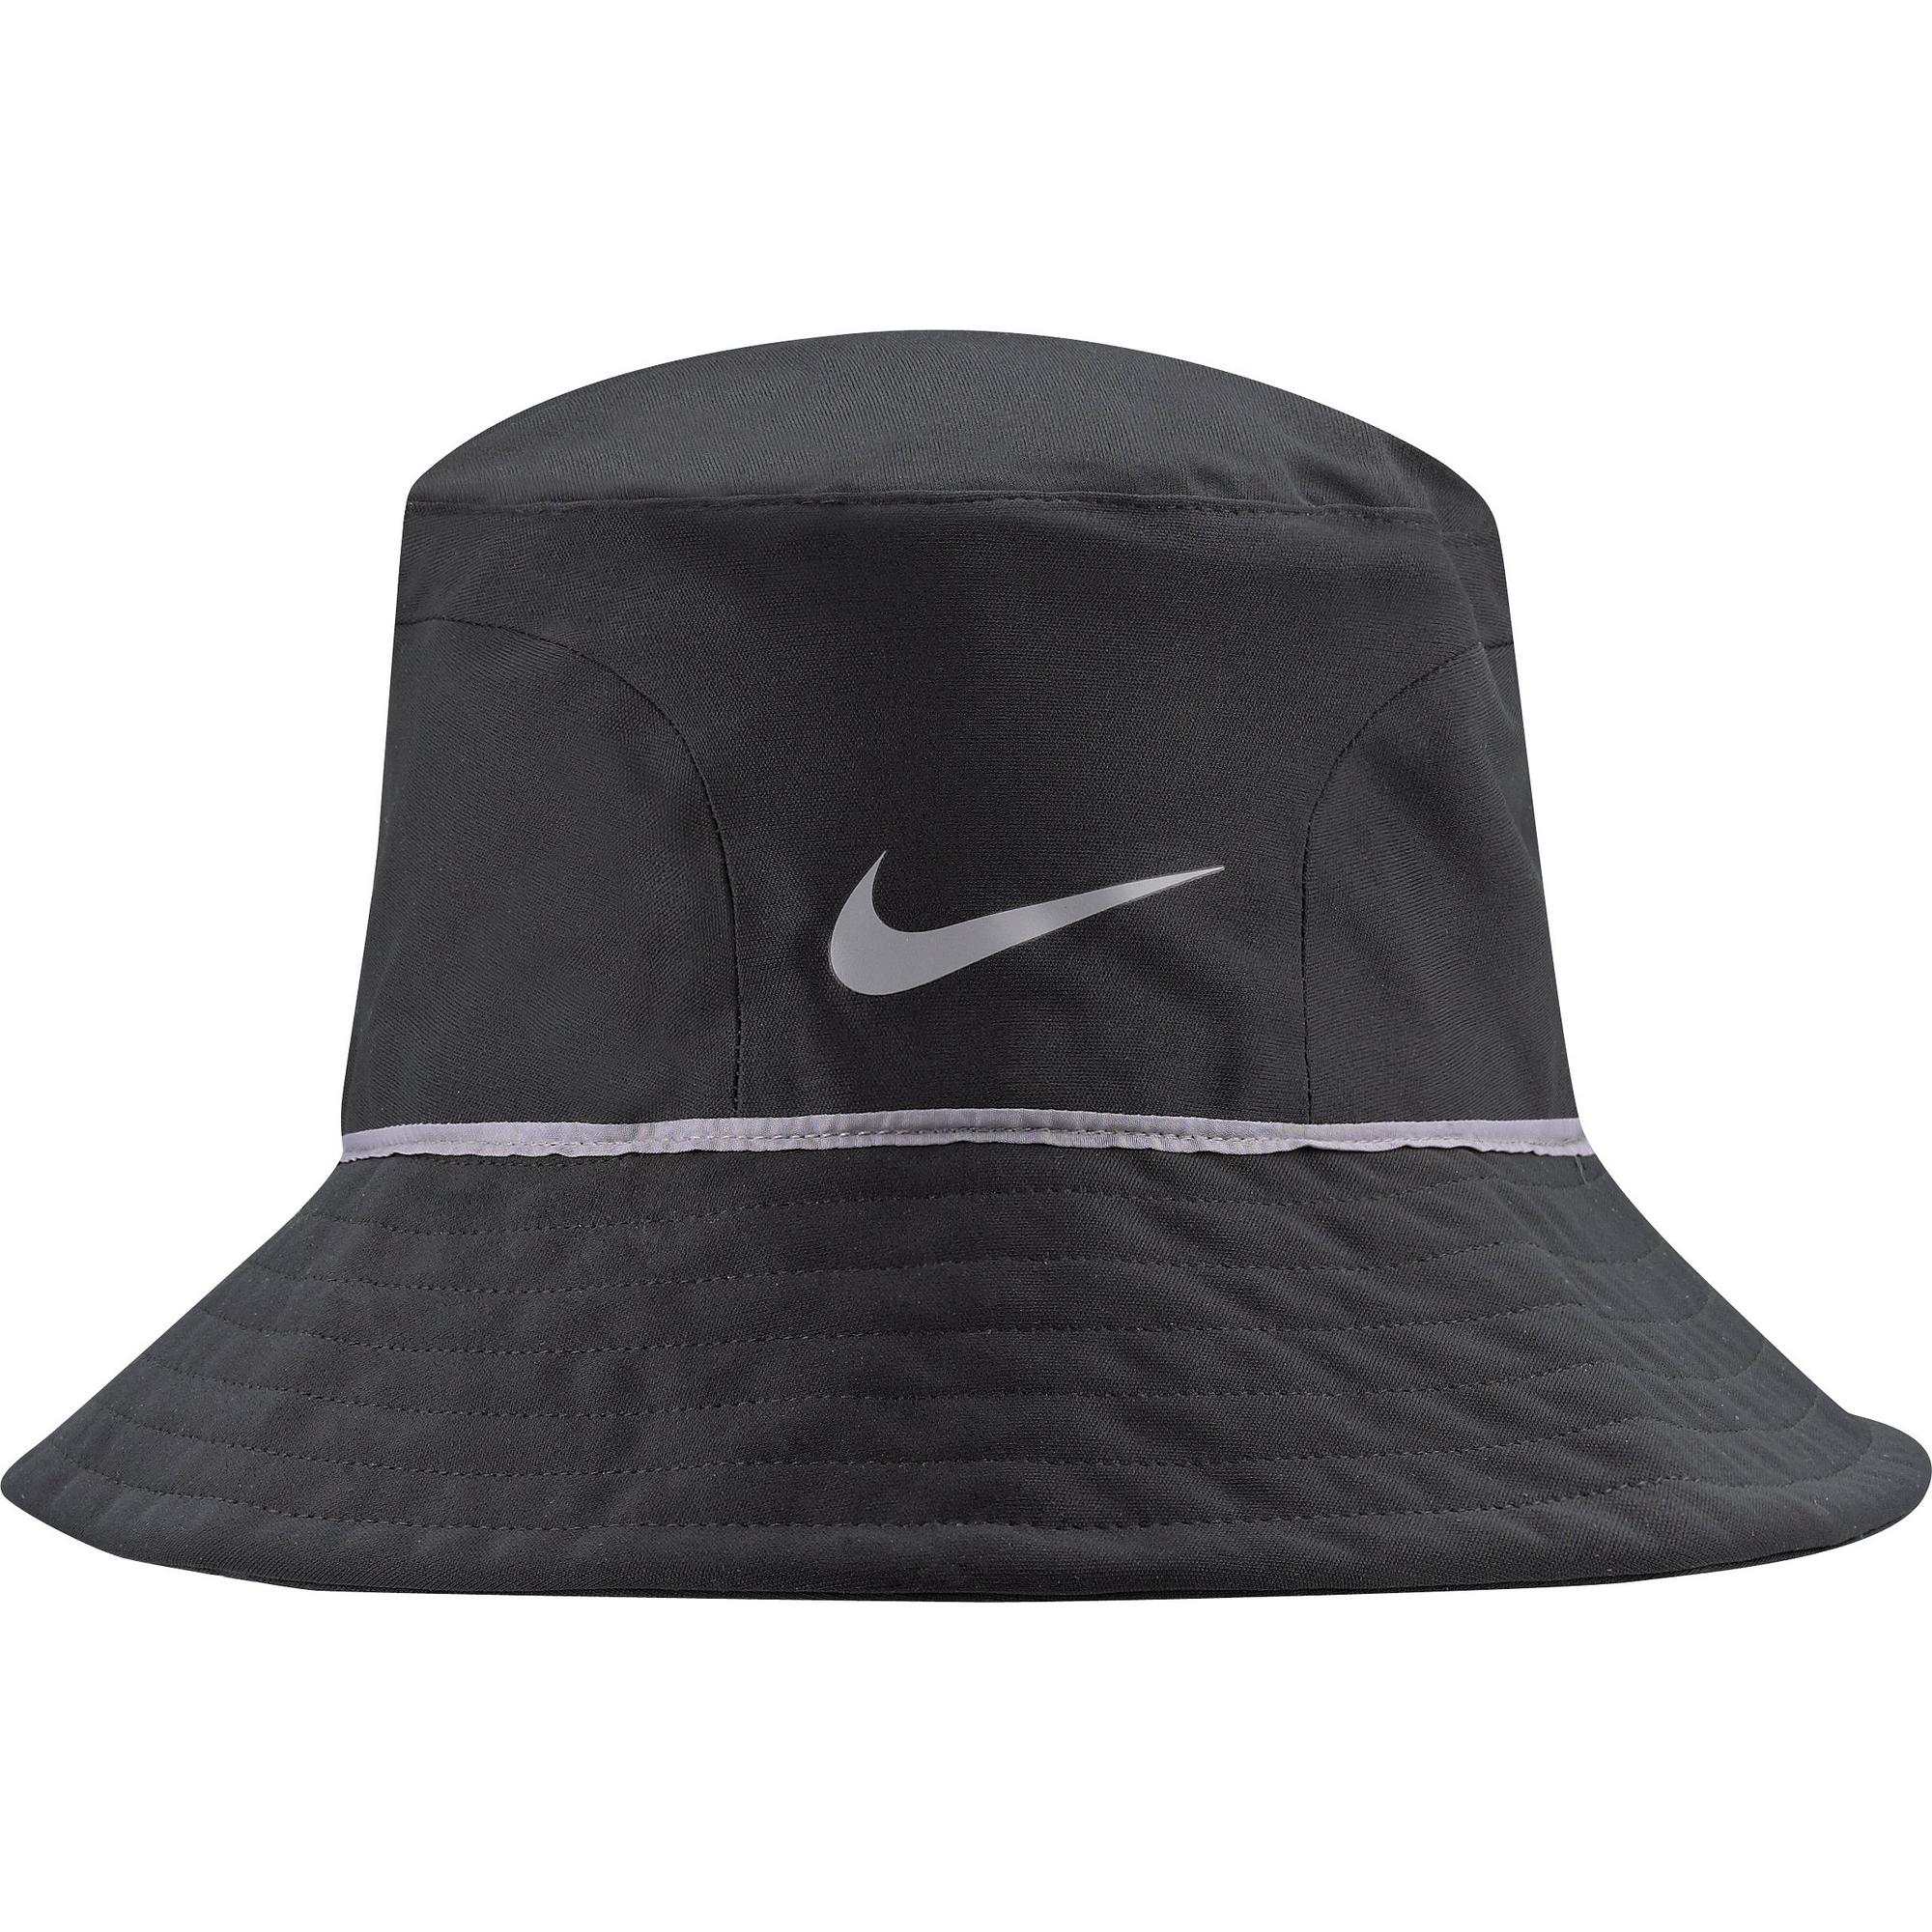 58a043965160b NIKE Men s Storm-FIT Bucket Hat